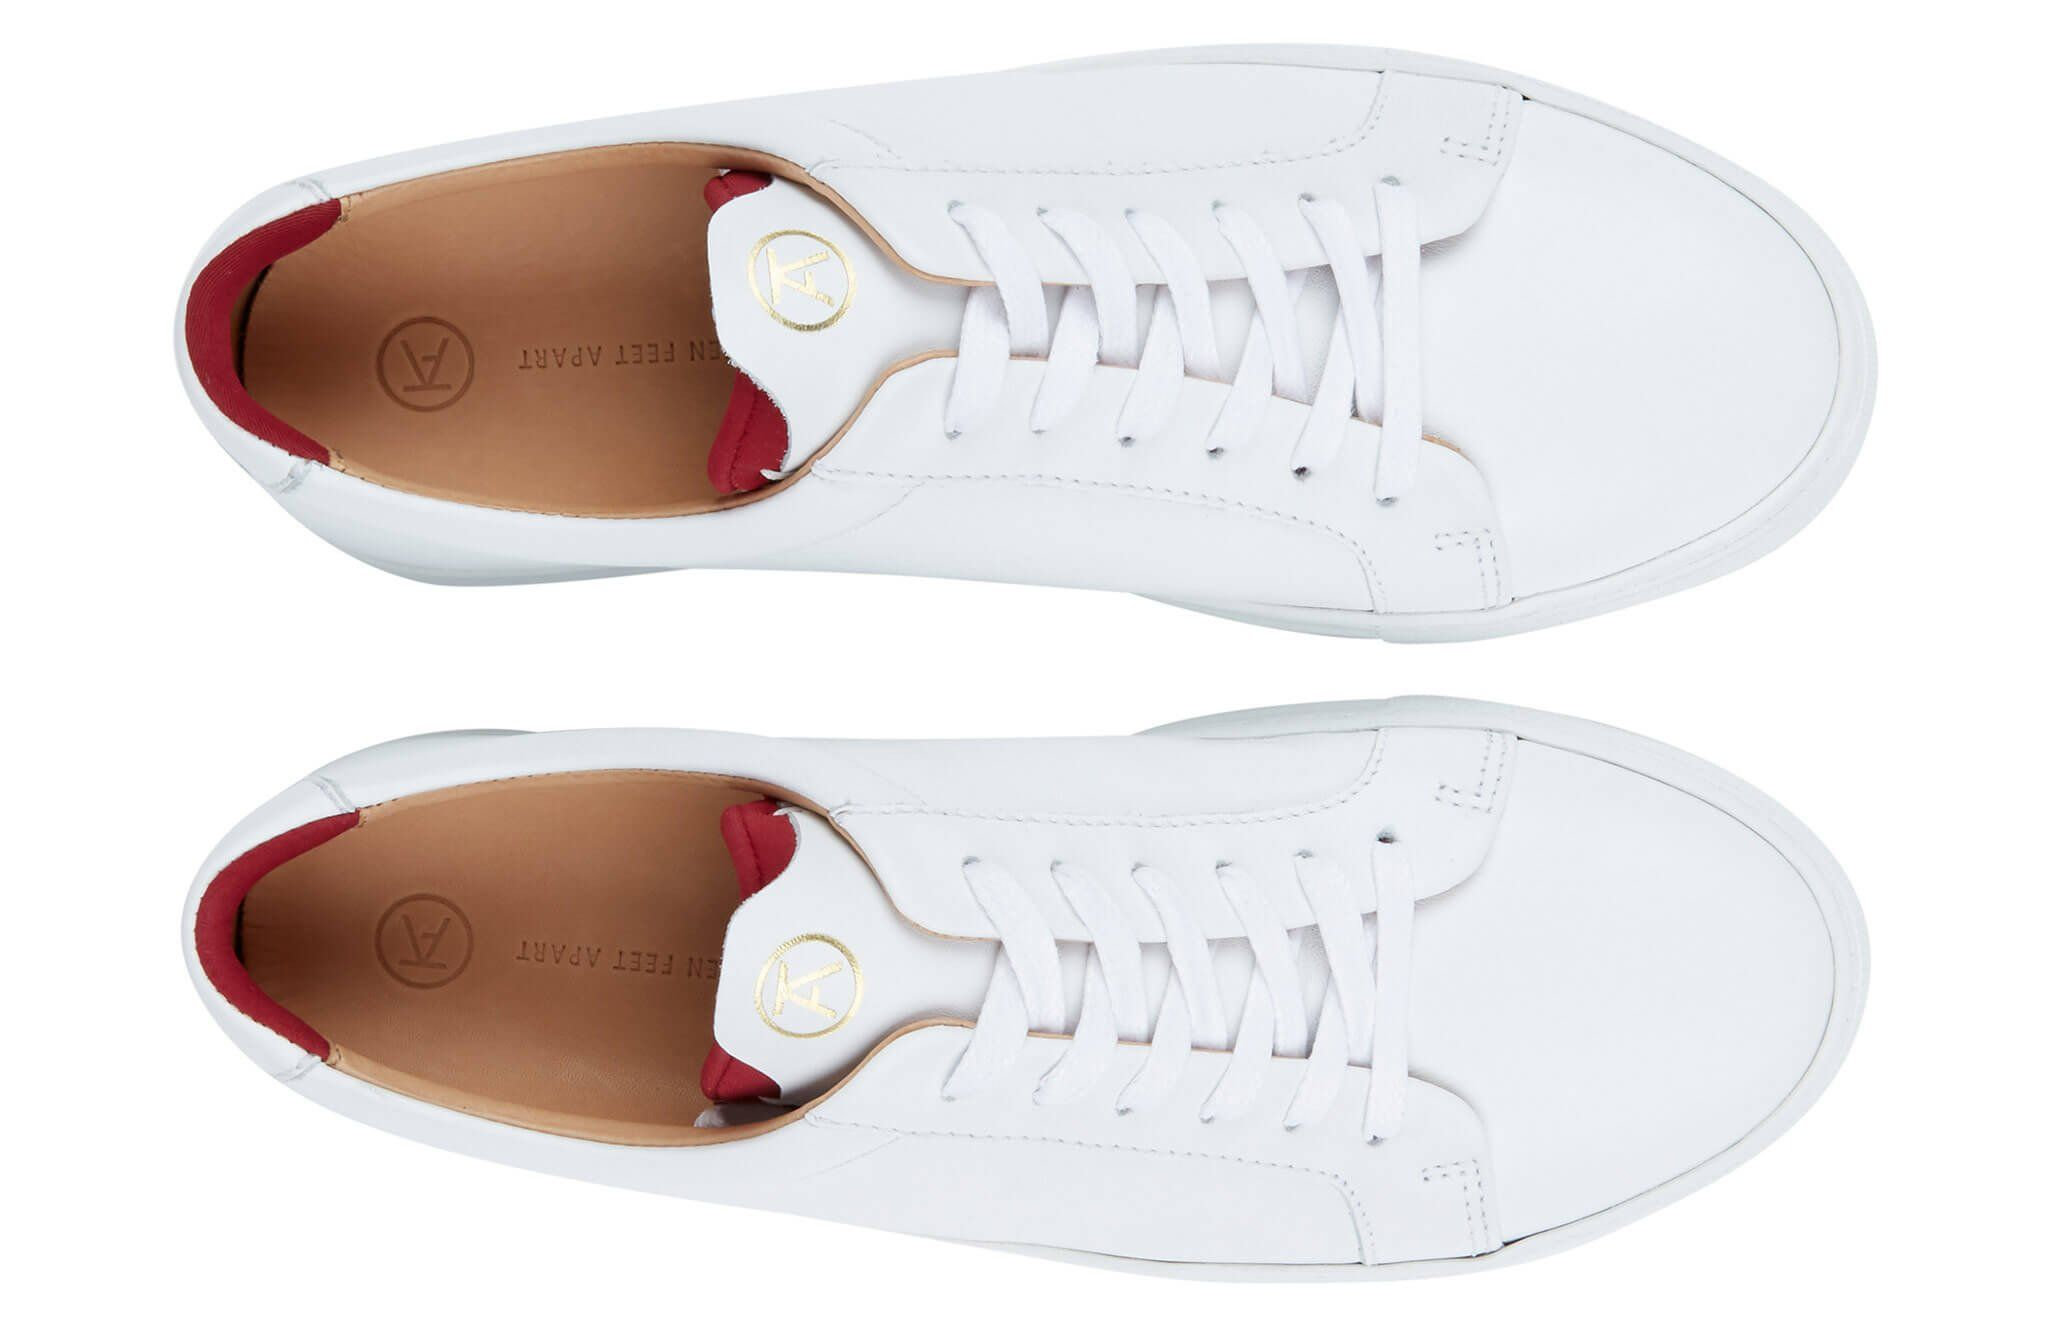 c225b5e2272 The Original 172 - White calf leather sneaker with signature red neoprene  comfort bridge system